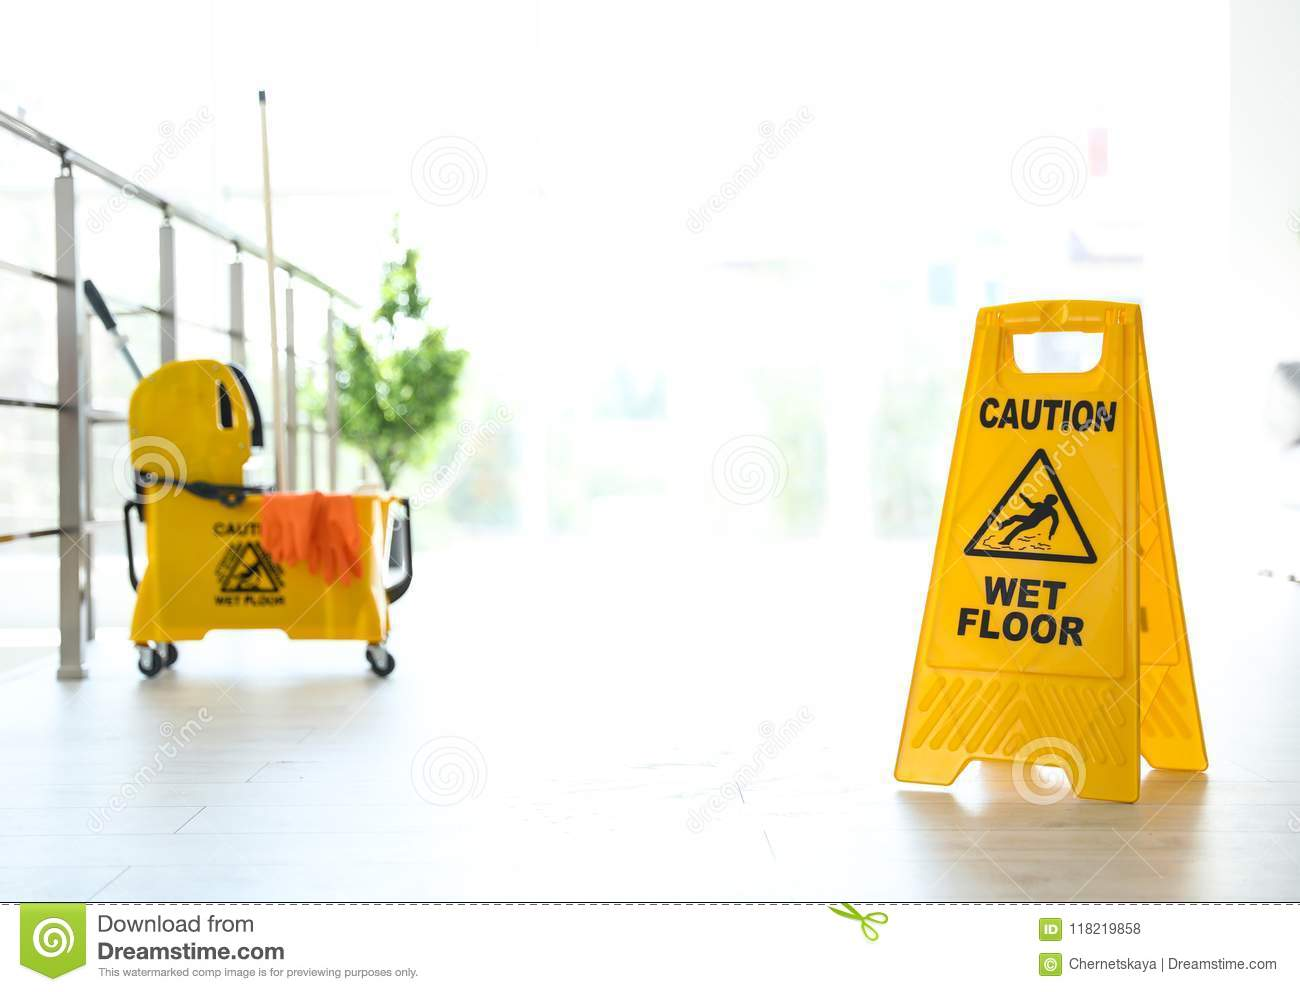 Phrase CAUTION WET FLOOR on safety sign and yellow mop bucket with cleaning supplies, indoors